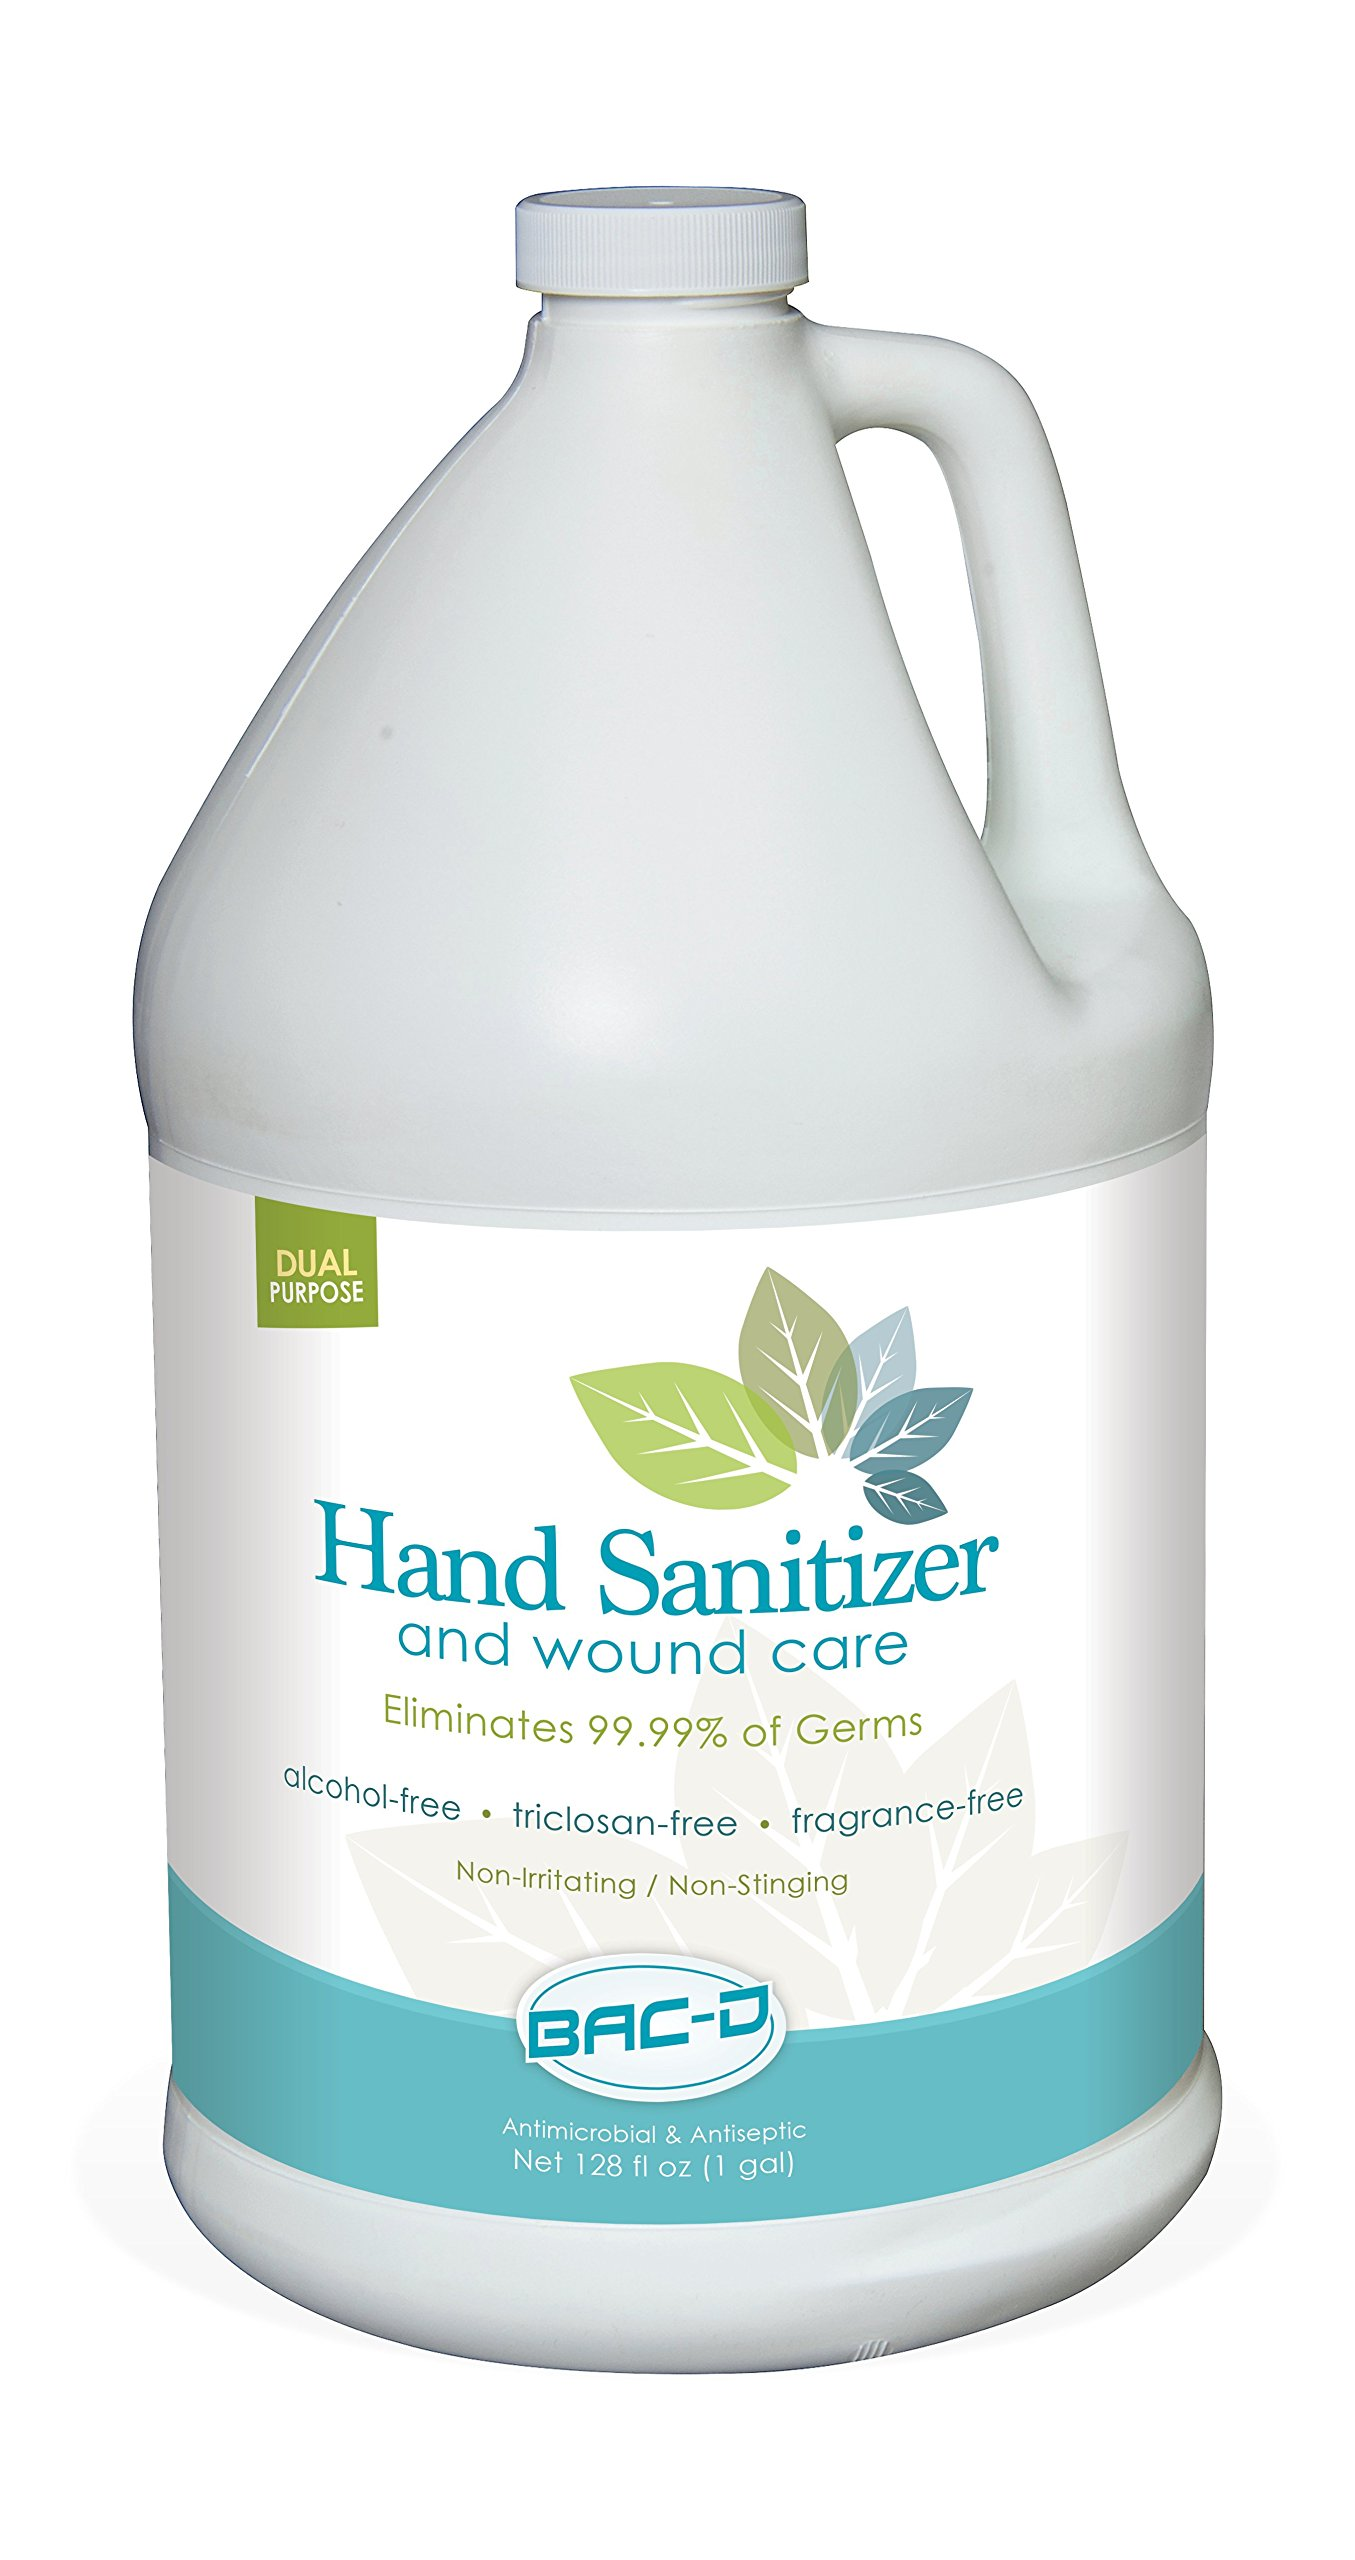 BAC-D 630 Alcohol Free Hand Sanitizer and Wound Care, 1 Gallon Refill, 128 oz. (Pack of 1) by BAC-D